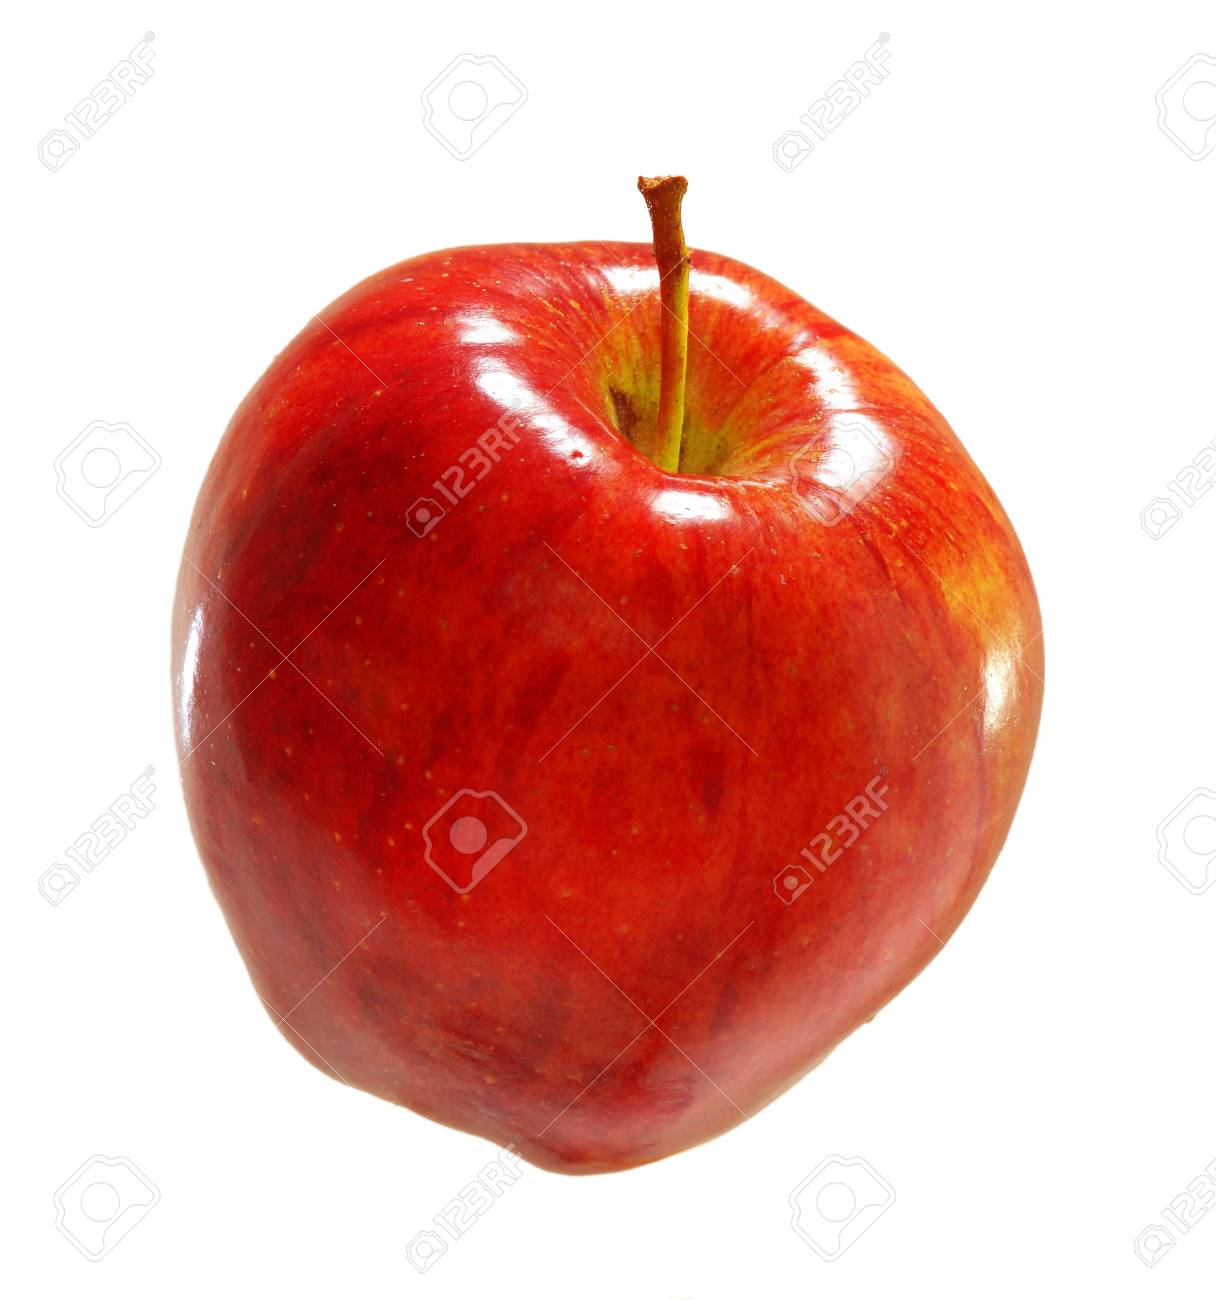 red apple isolated on white background Stock Photo - 21020145